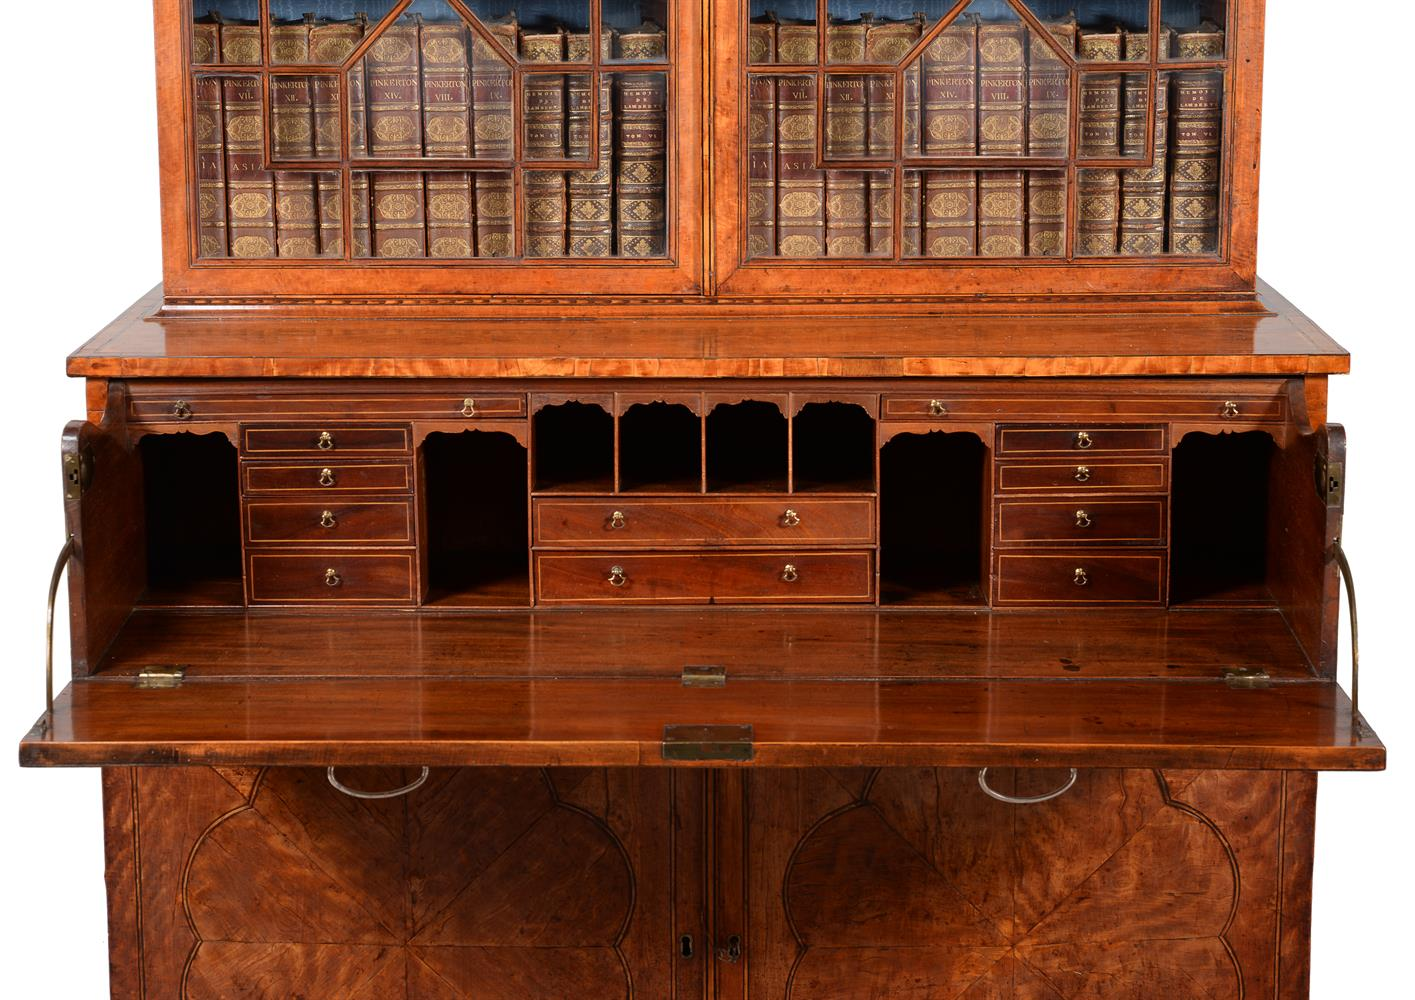 A GEORGE III SATINWOOD AND LINE INLAID SECRETAIRE BOOKCASE, CIRCA 1790 - Image 4 of 6